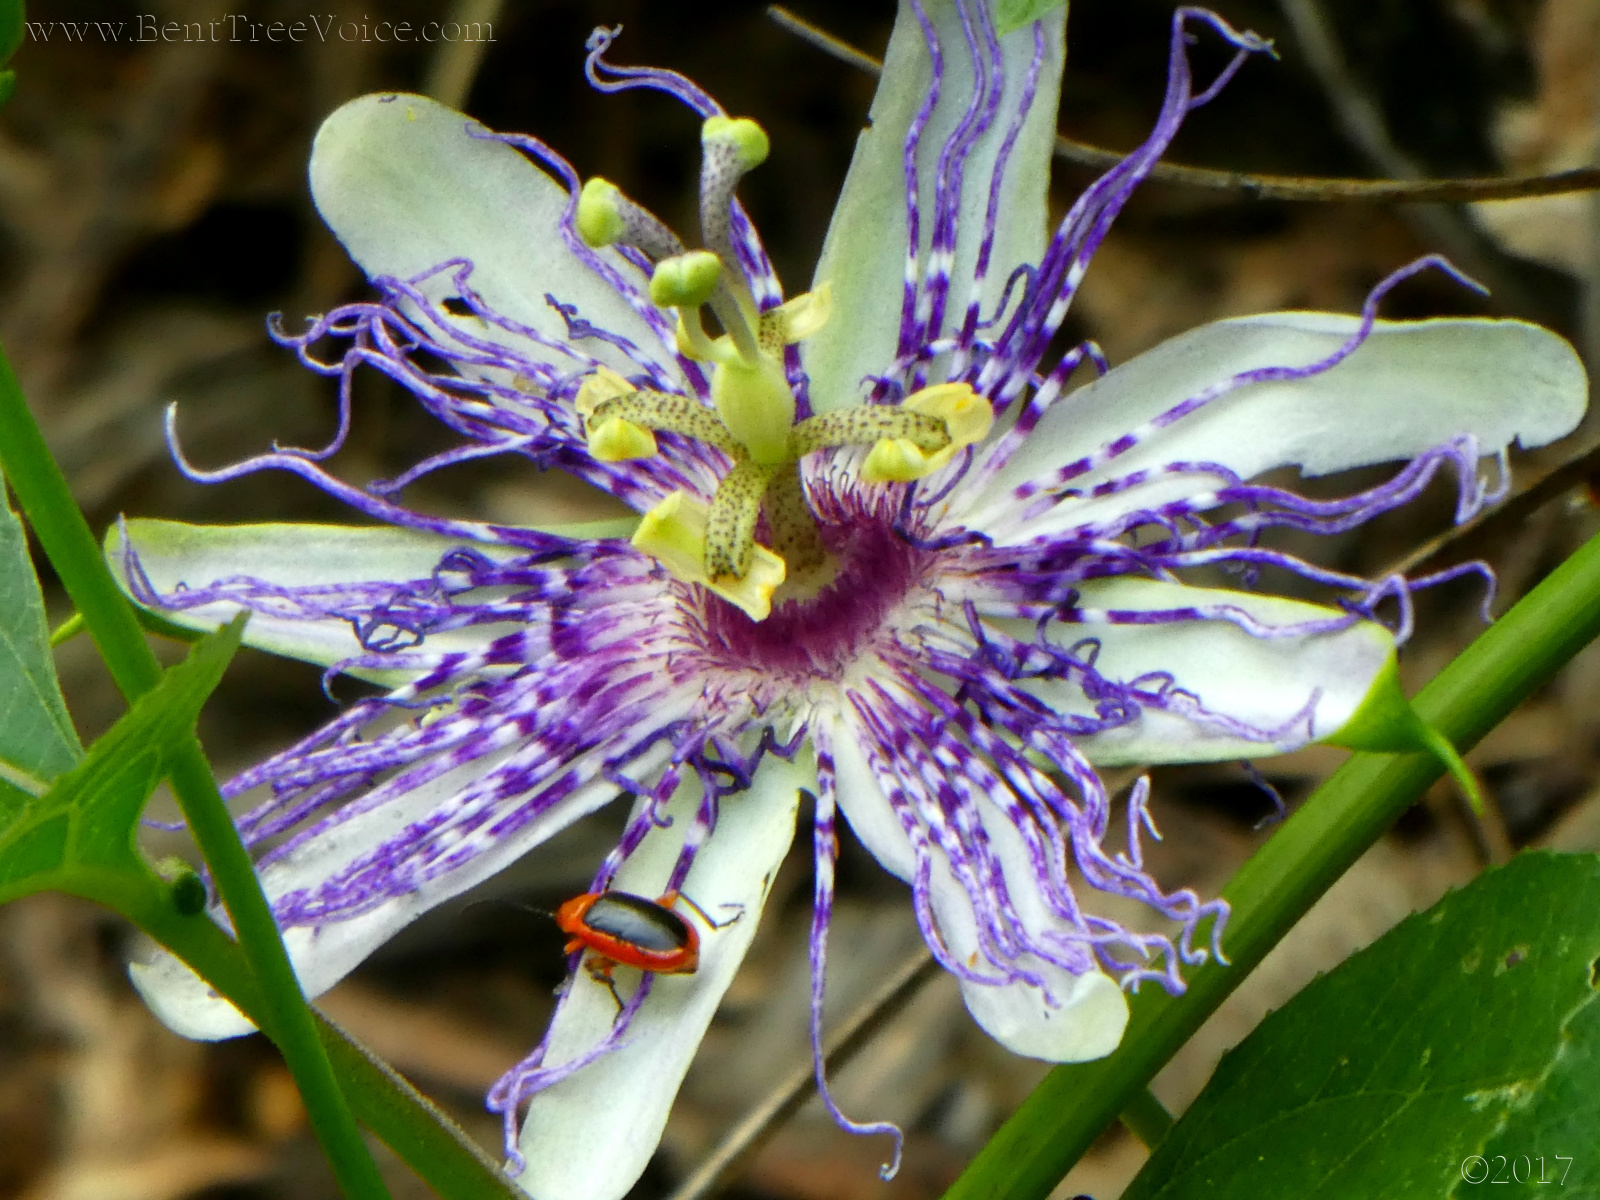 August 6, 2017 - native passionflower vine in Bent Tree